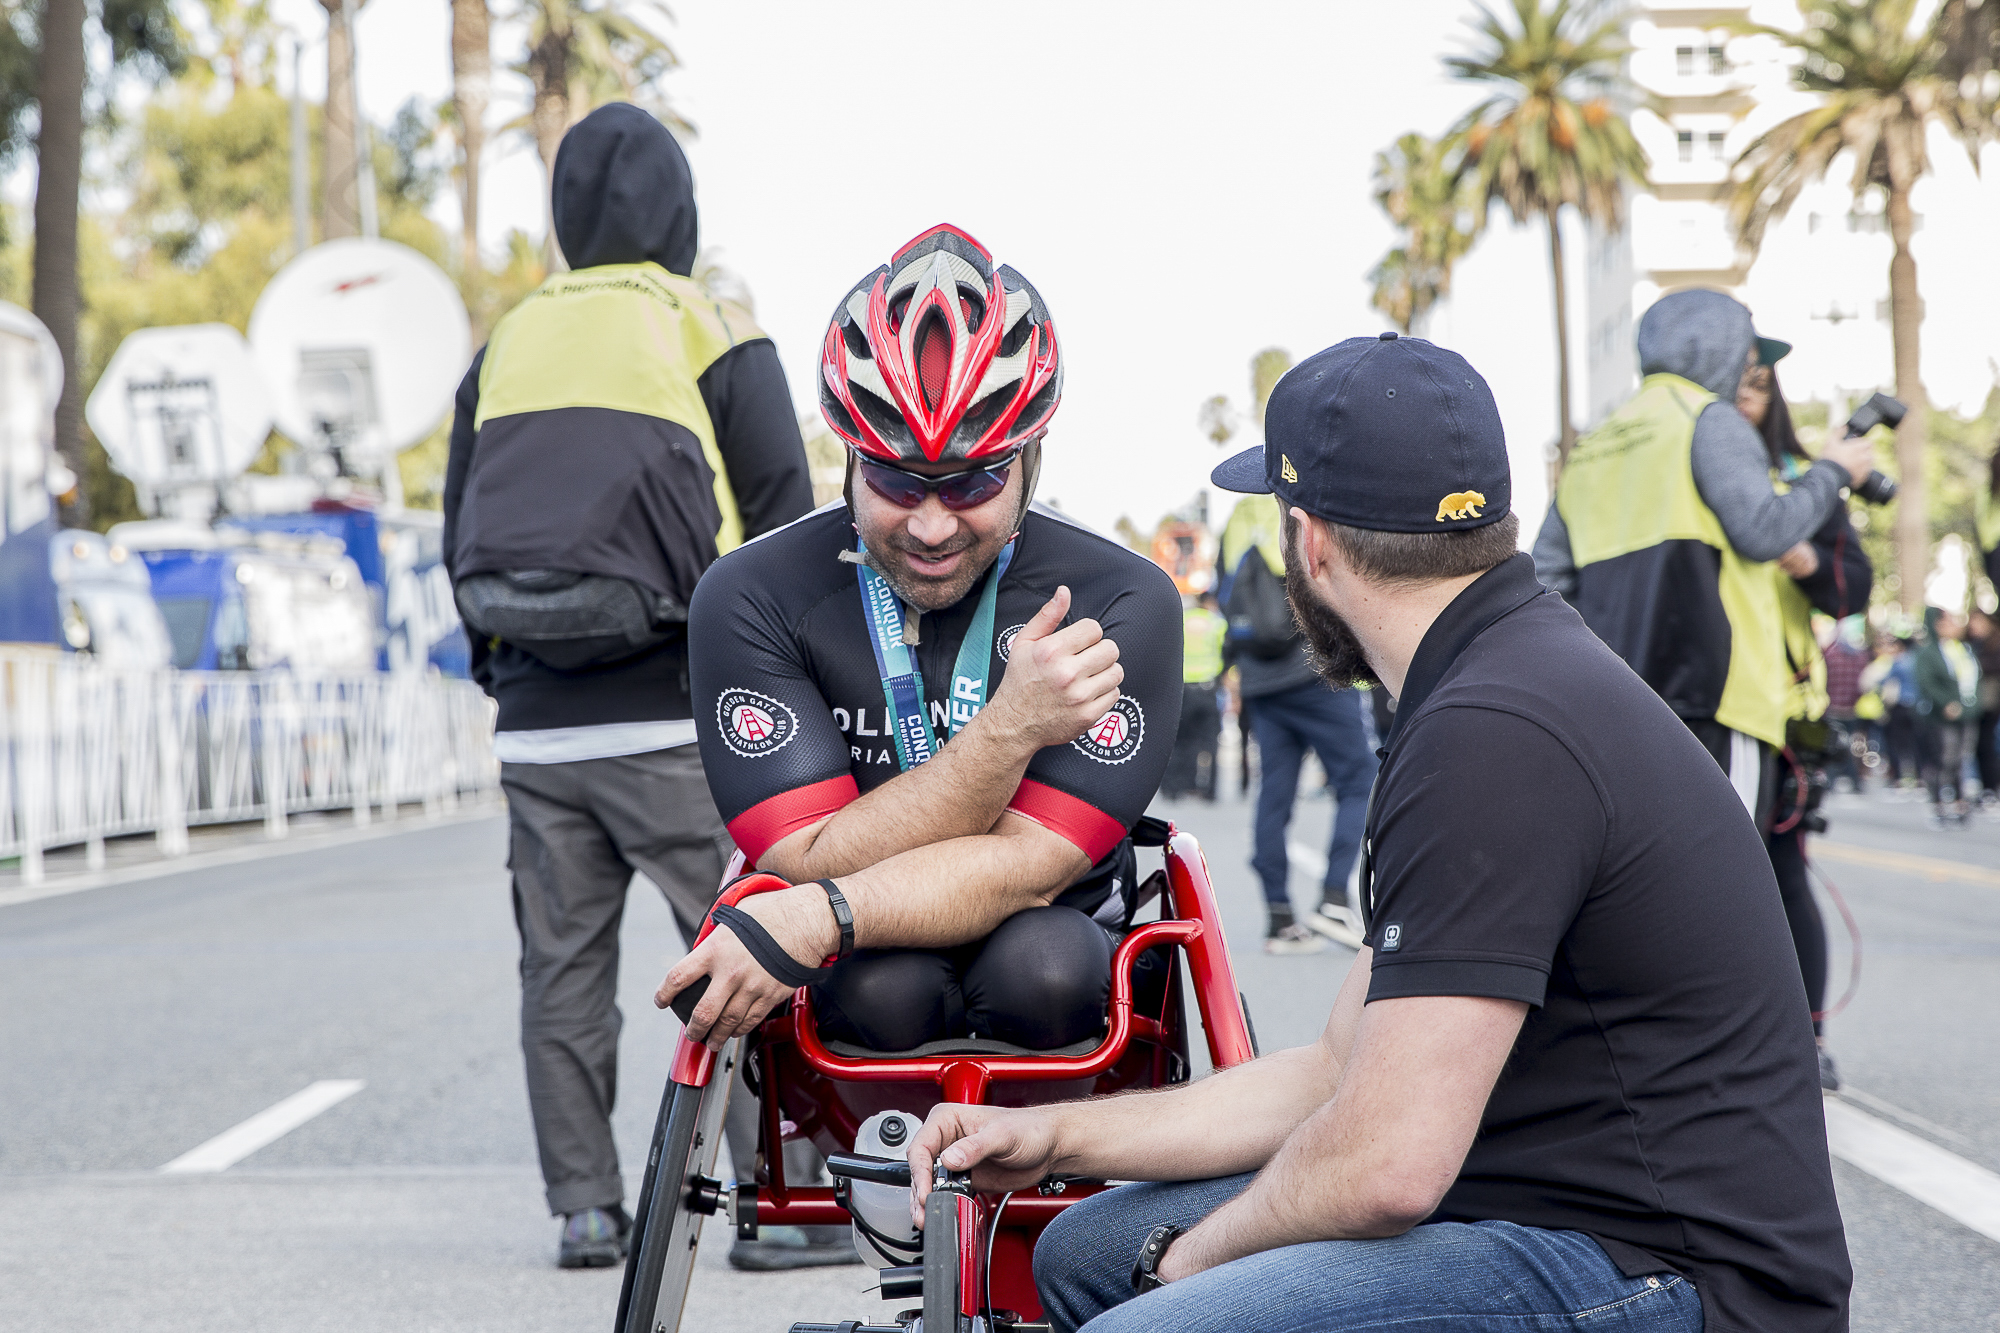 Franz Walkup (bib # 309) discusses the race with a friend of his after completing the 33rd annual Los Angeles Marathon with a final time of 1:59:54 in Santa Monica, California on Sunday, March 18 2018. (Matthew Martin/Corsair Photo)